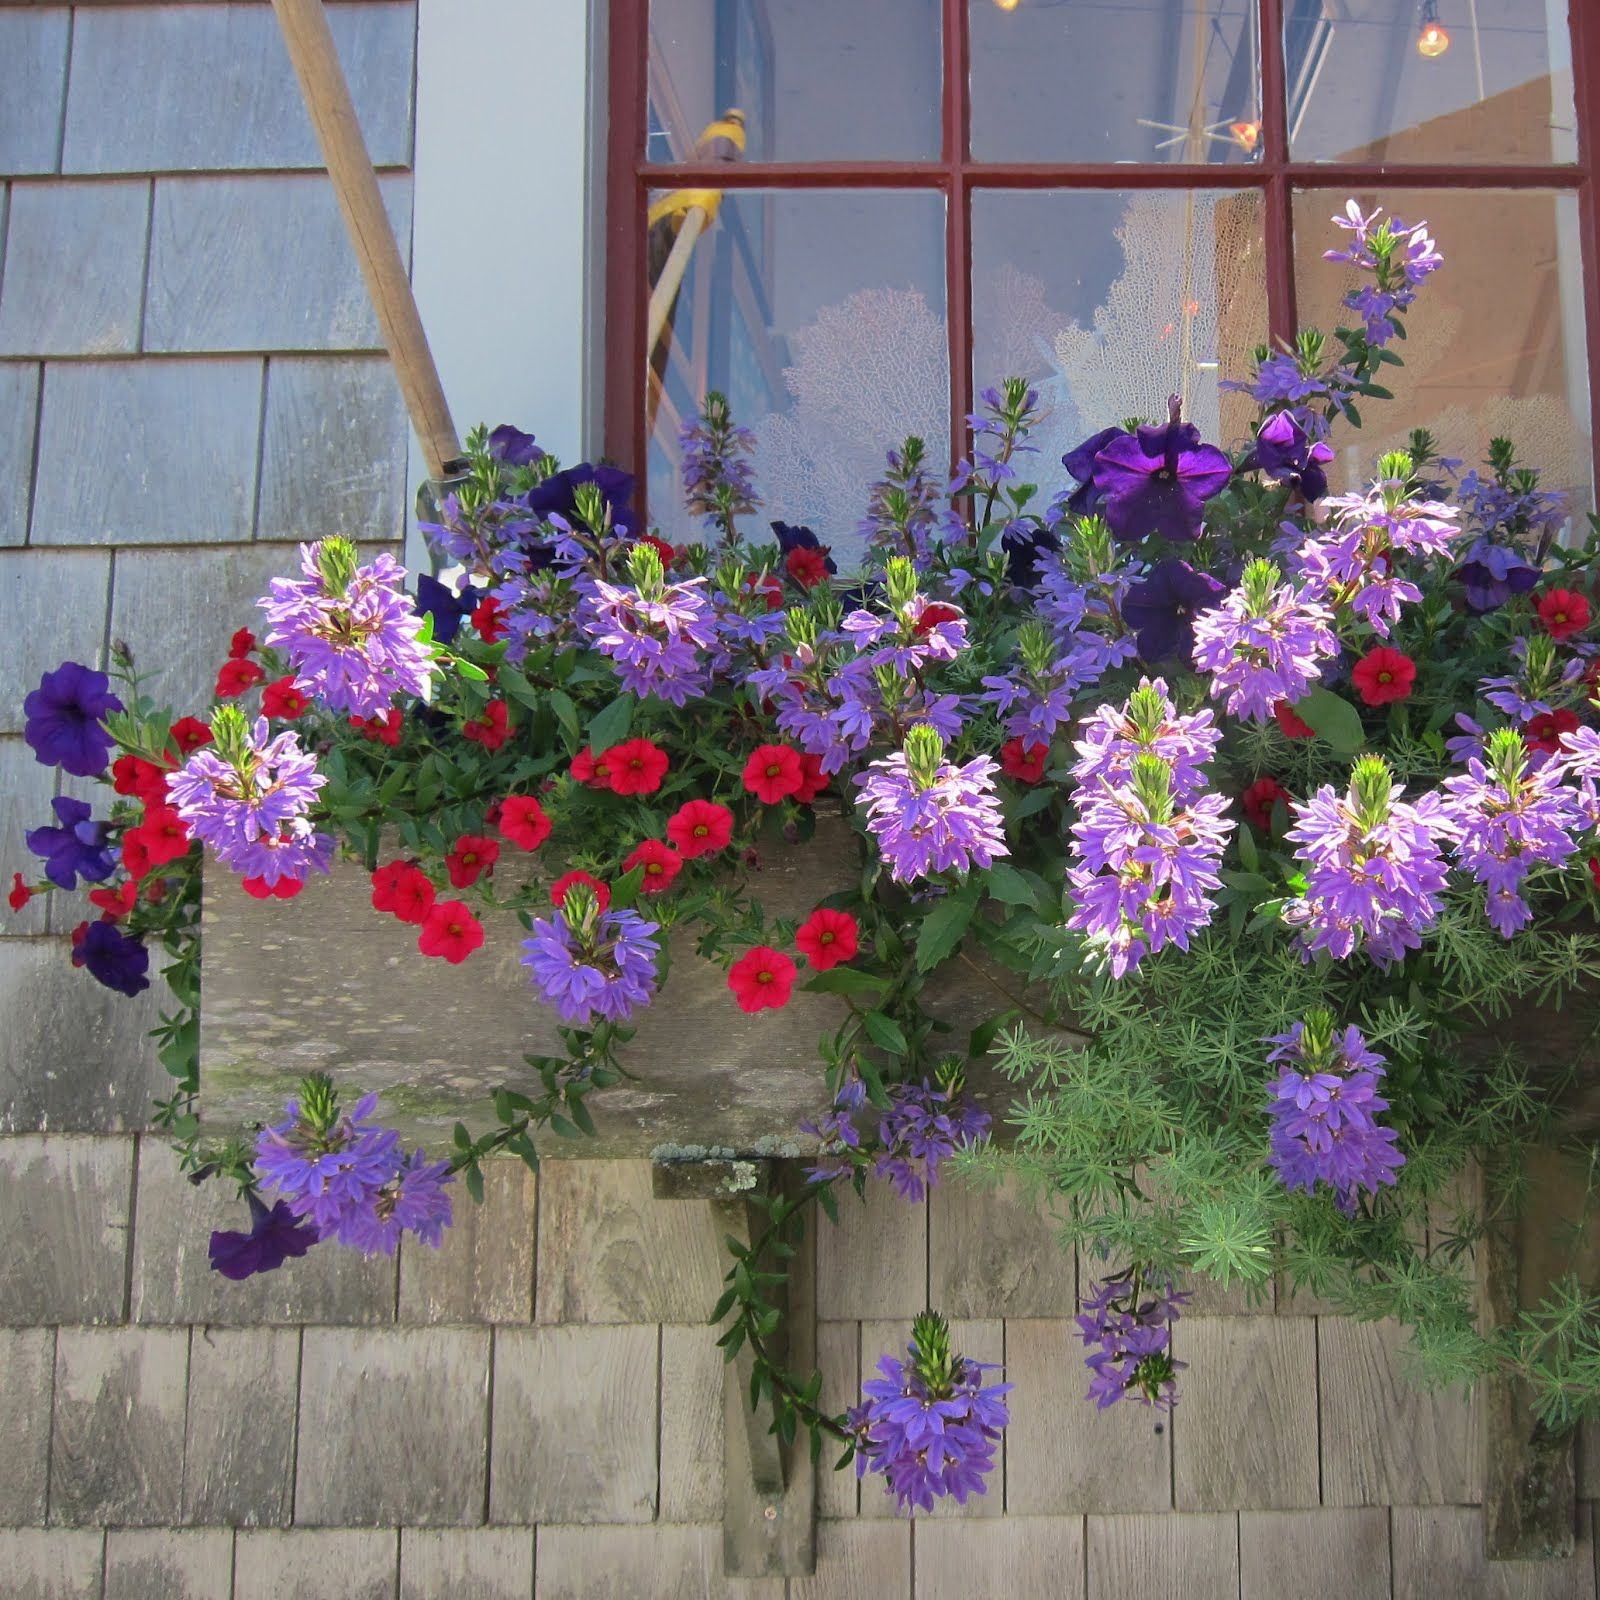 Window box ideas without flowers  imgjpg  pixels  window boxes  pinterest